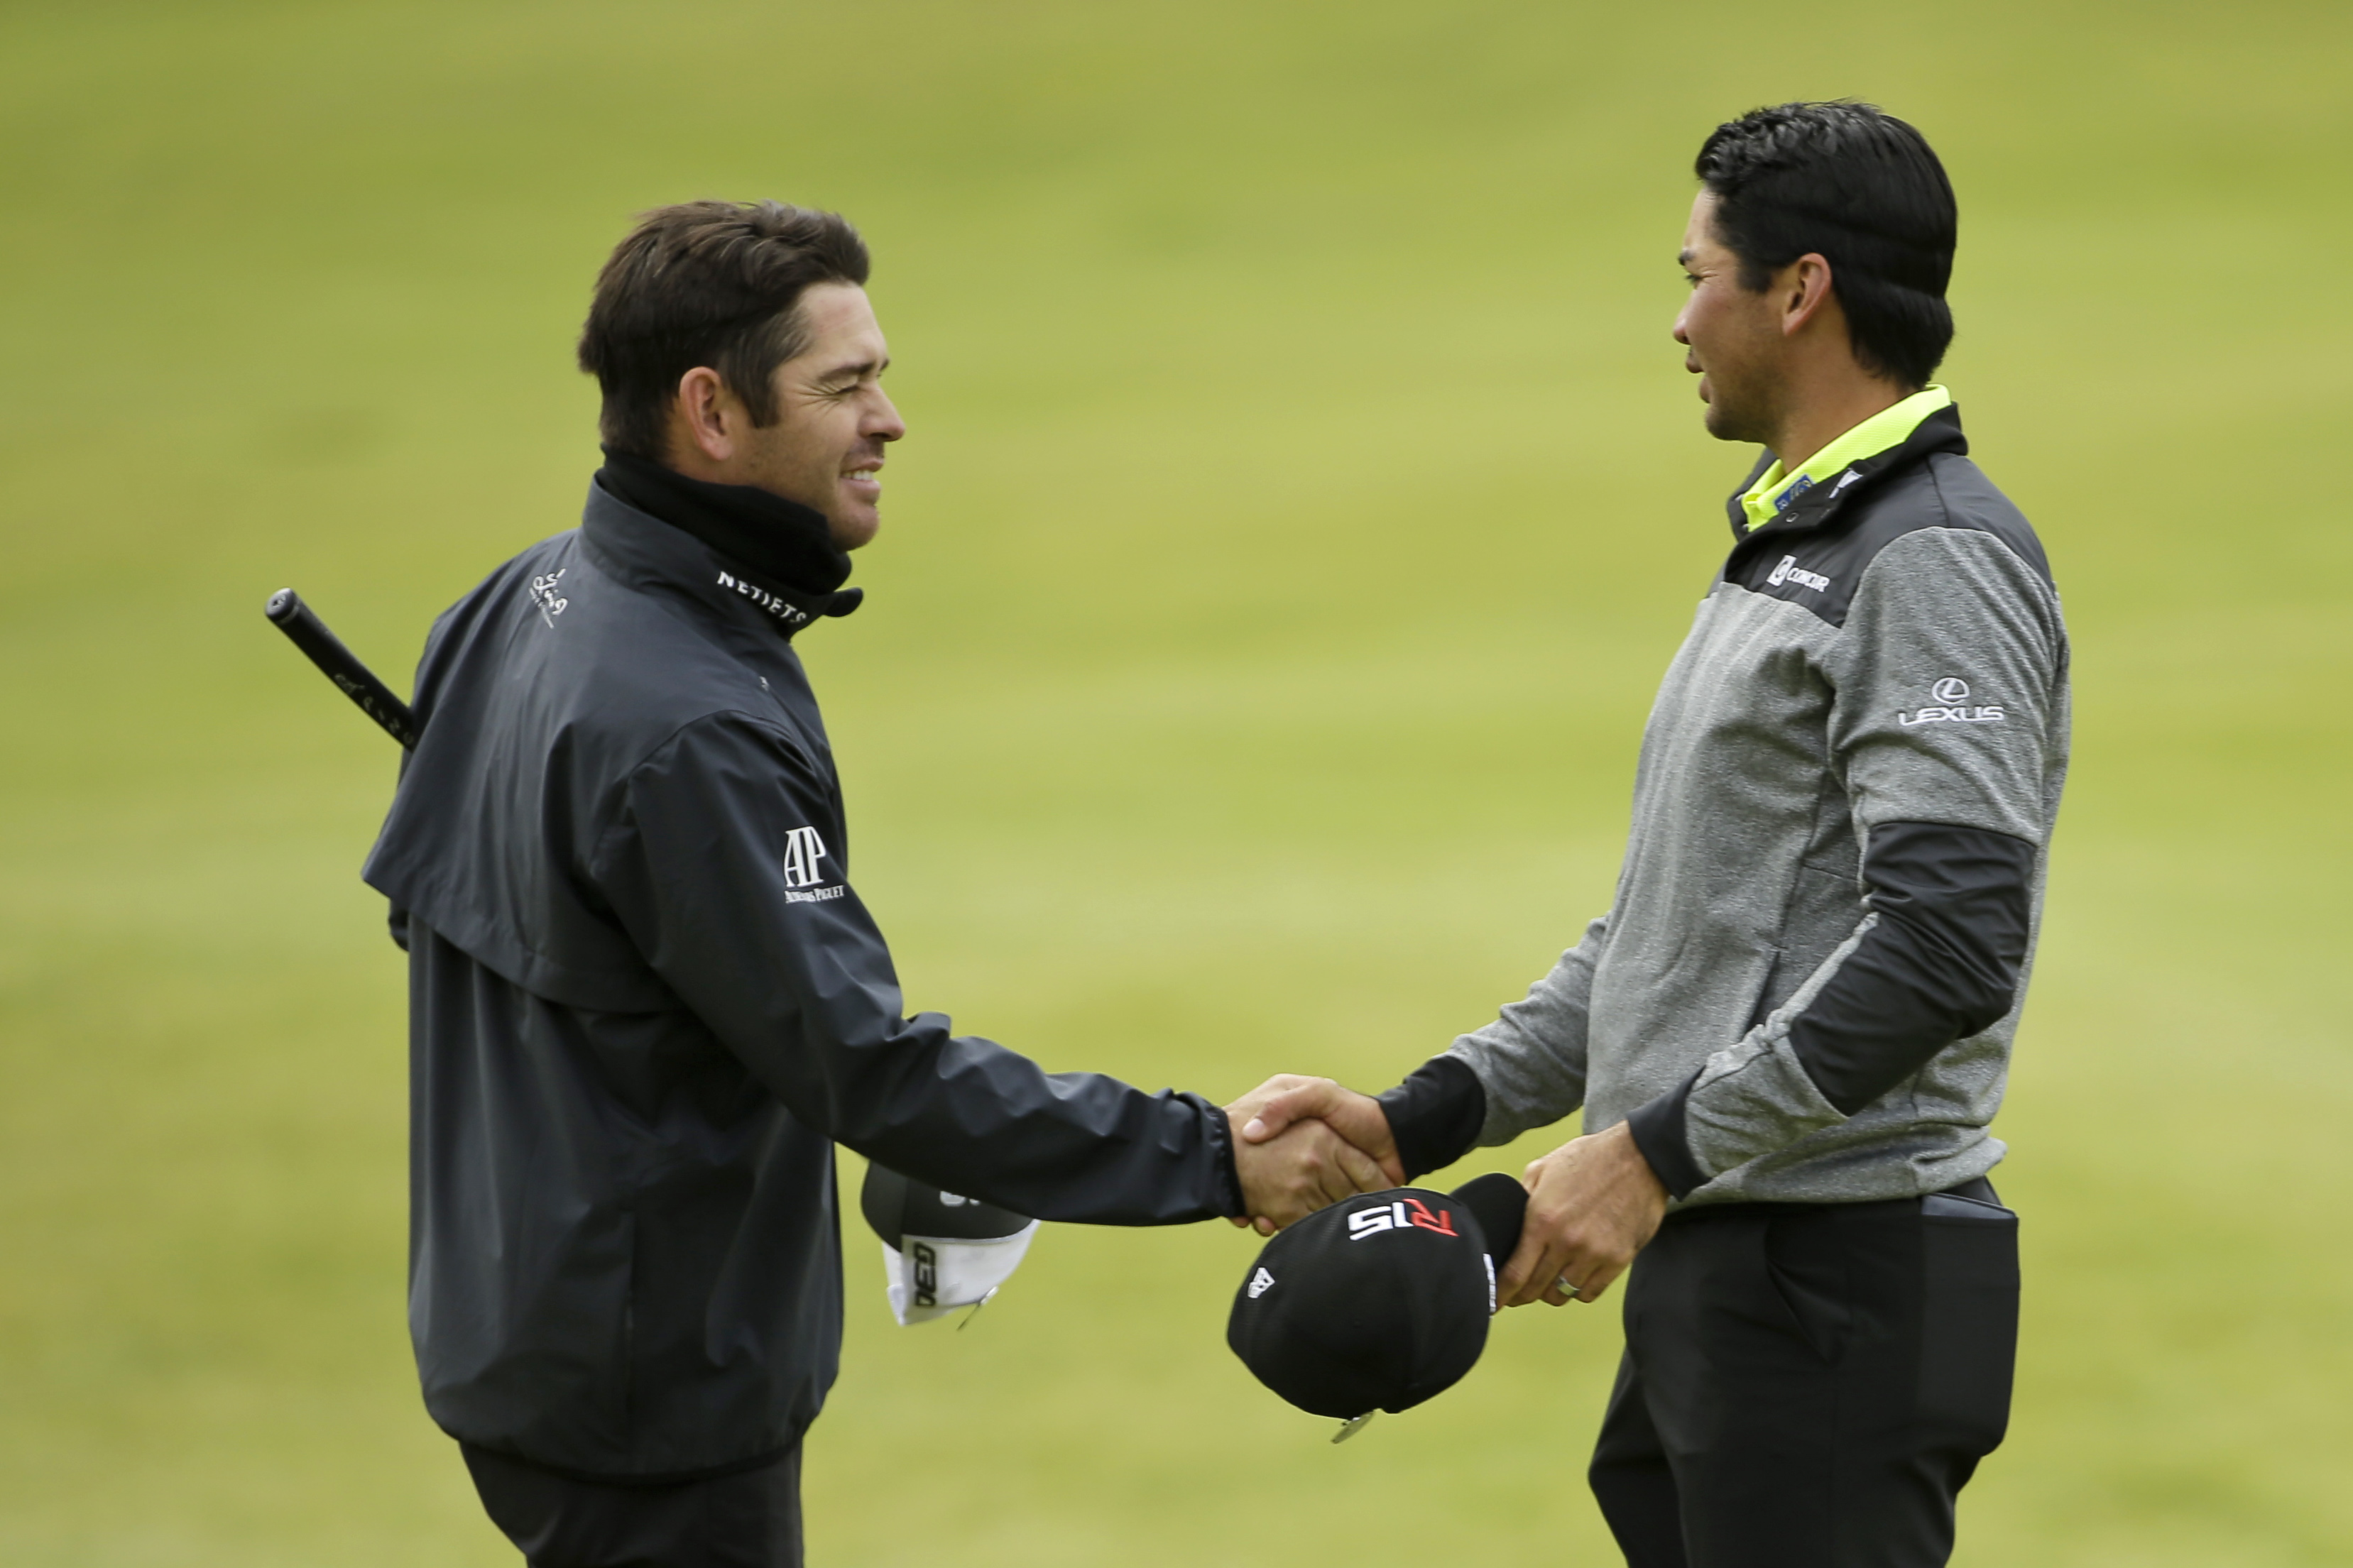 Australia's Jason Day, right, shakes hands with South Africa' Louis Oosthuizen on the 18th green following their round during the first round of the British Open Golf Championship at the Old Course, St. Andrews, Scotland, Thursday, July 16, 2015. (AP Phot